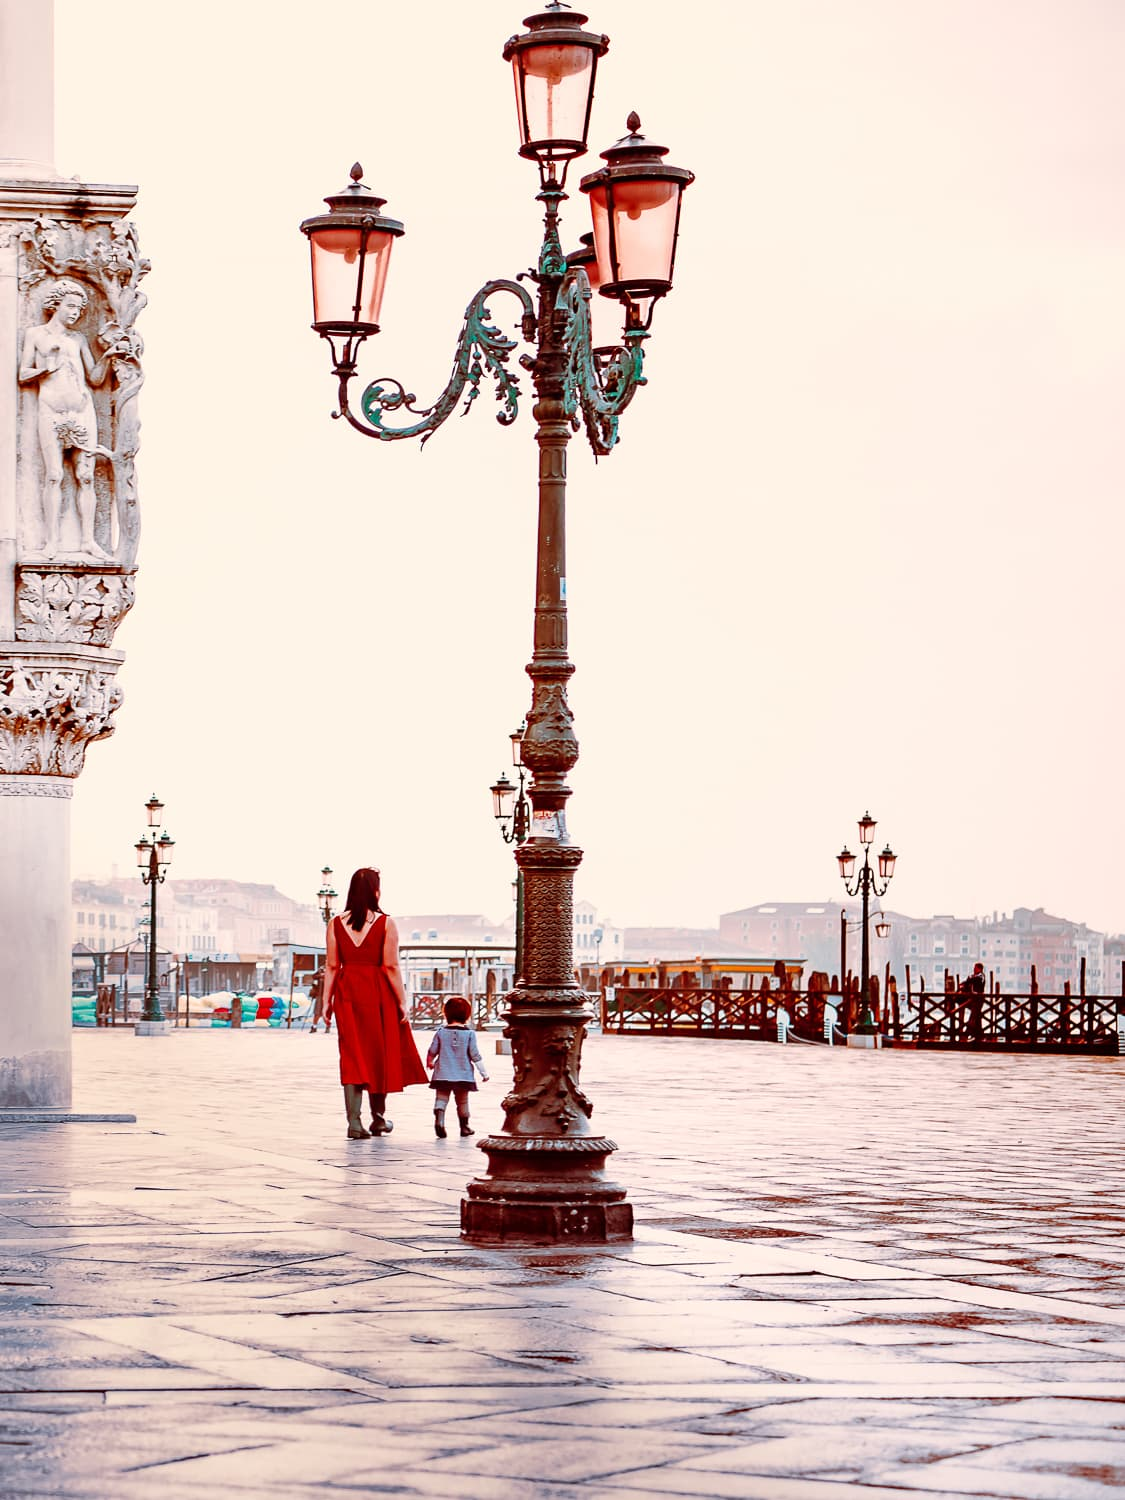 Iconic rose colored lamps outside the Doge's palace in Venice Italy.